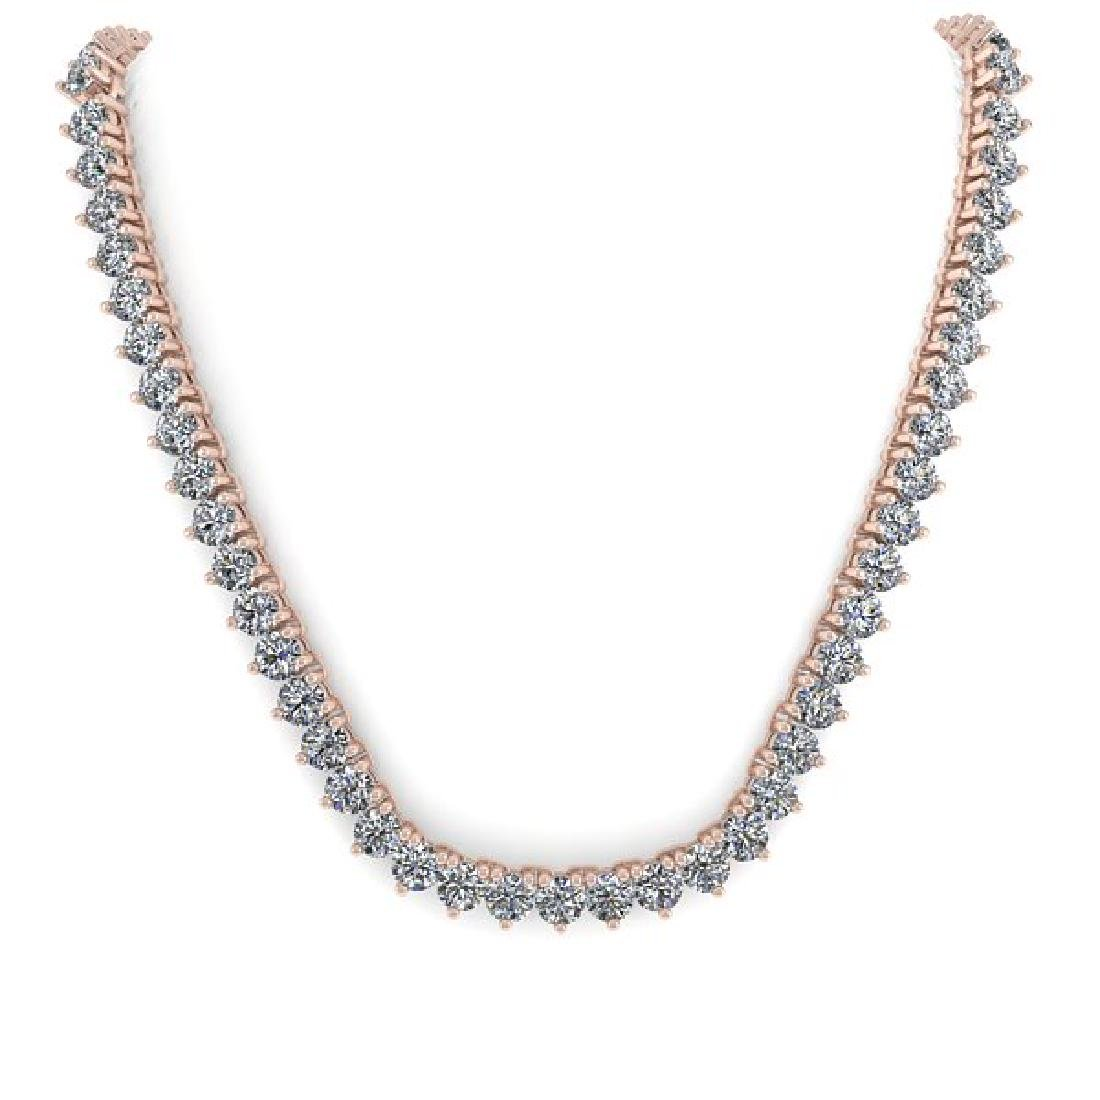 50 CTW Solitaire SI Diamond Necklace 18K Rose Gold - 3